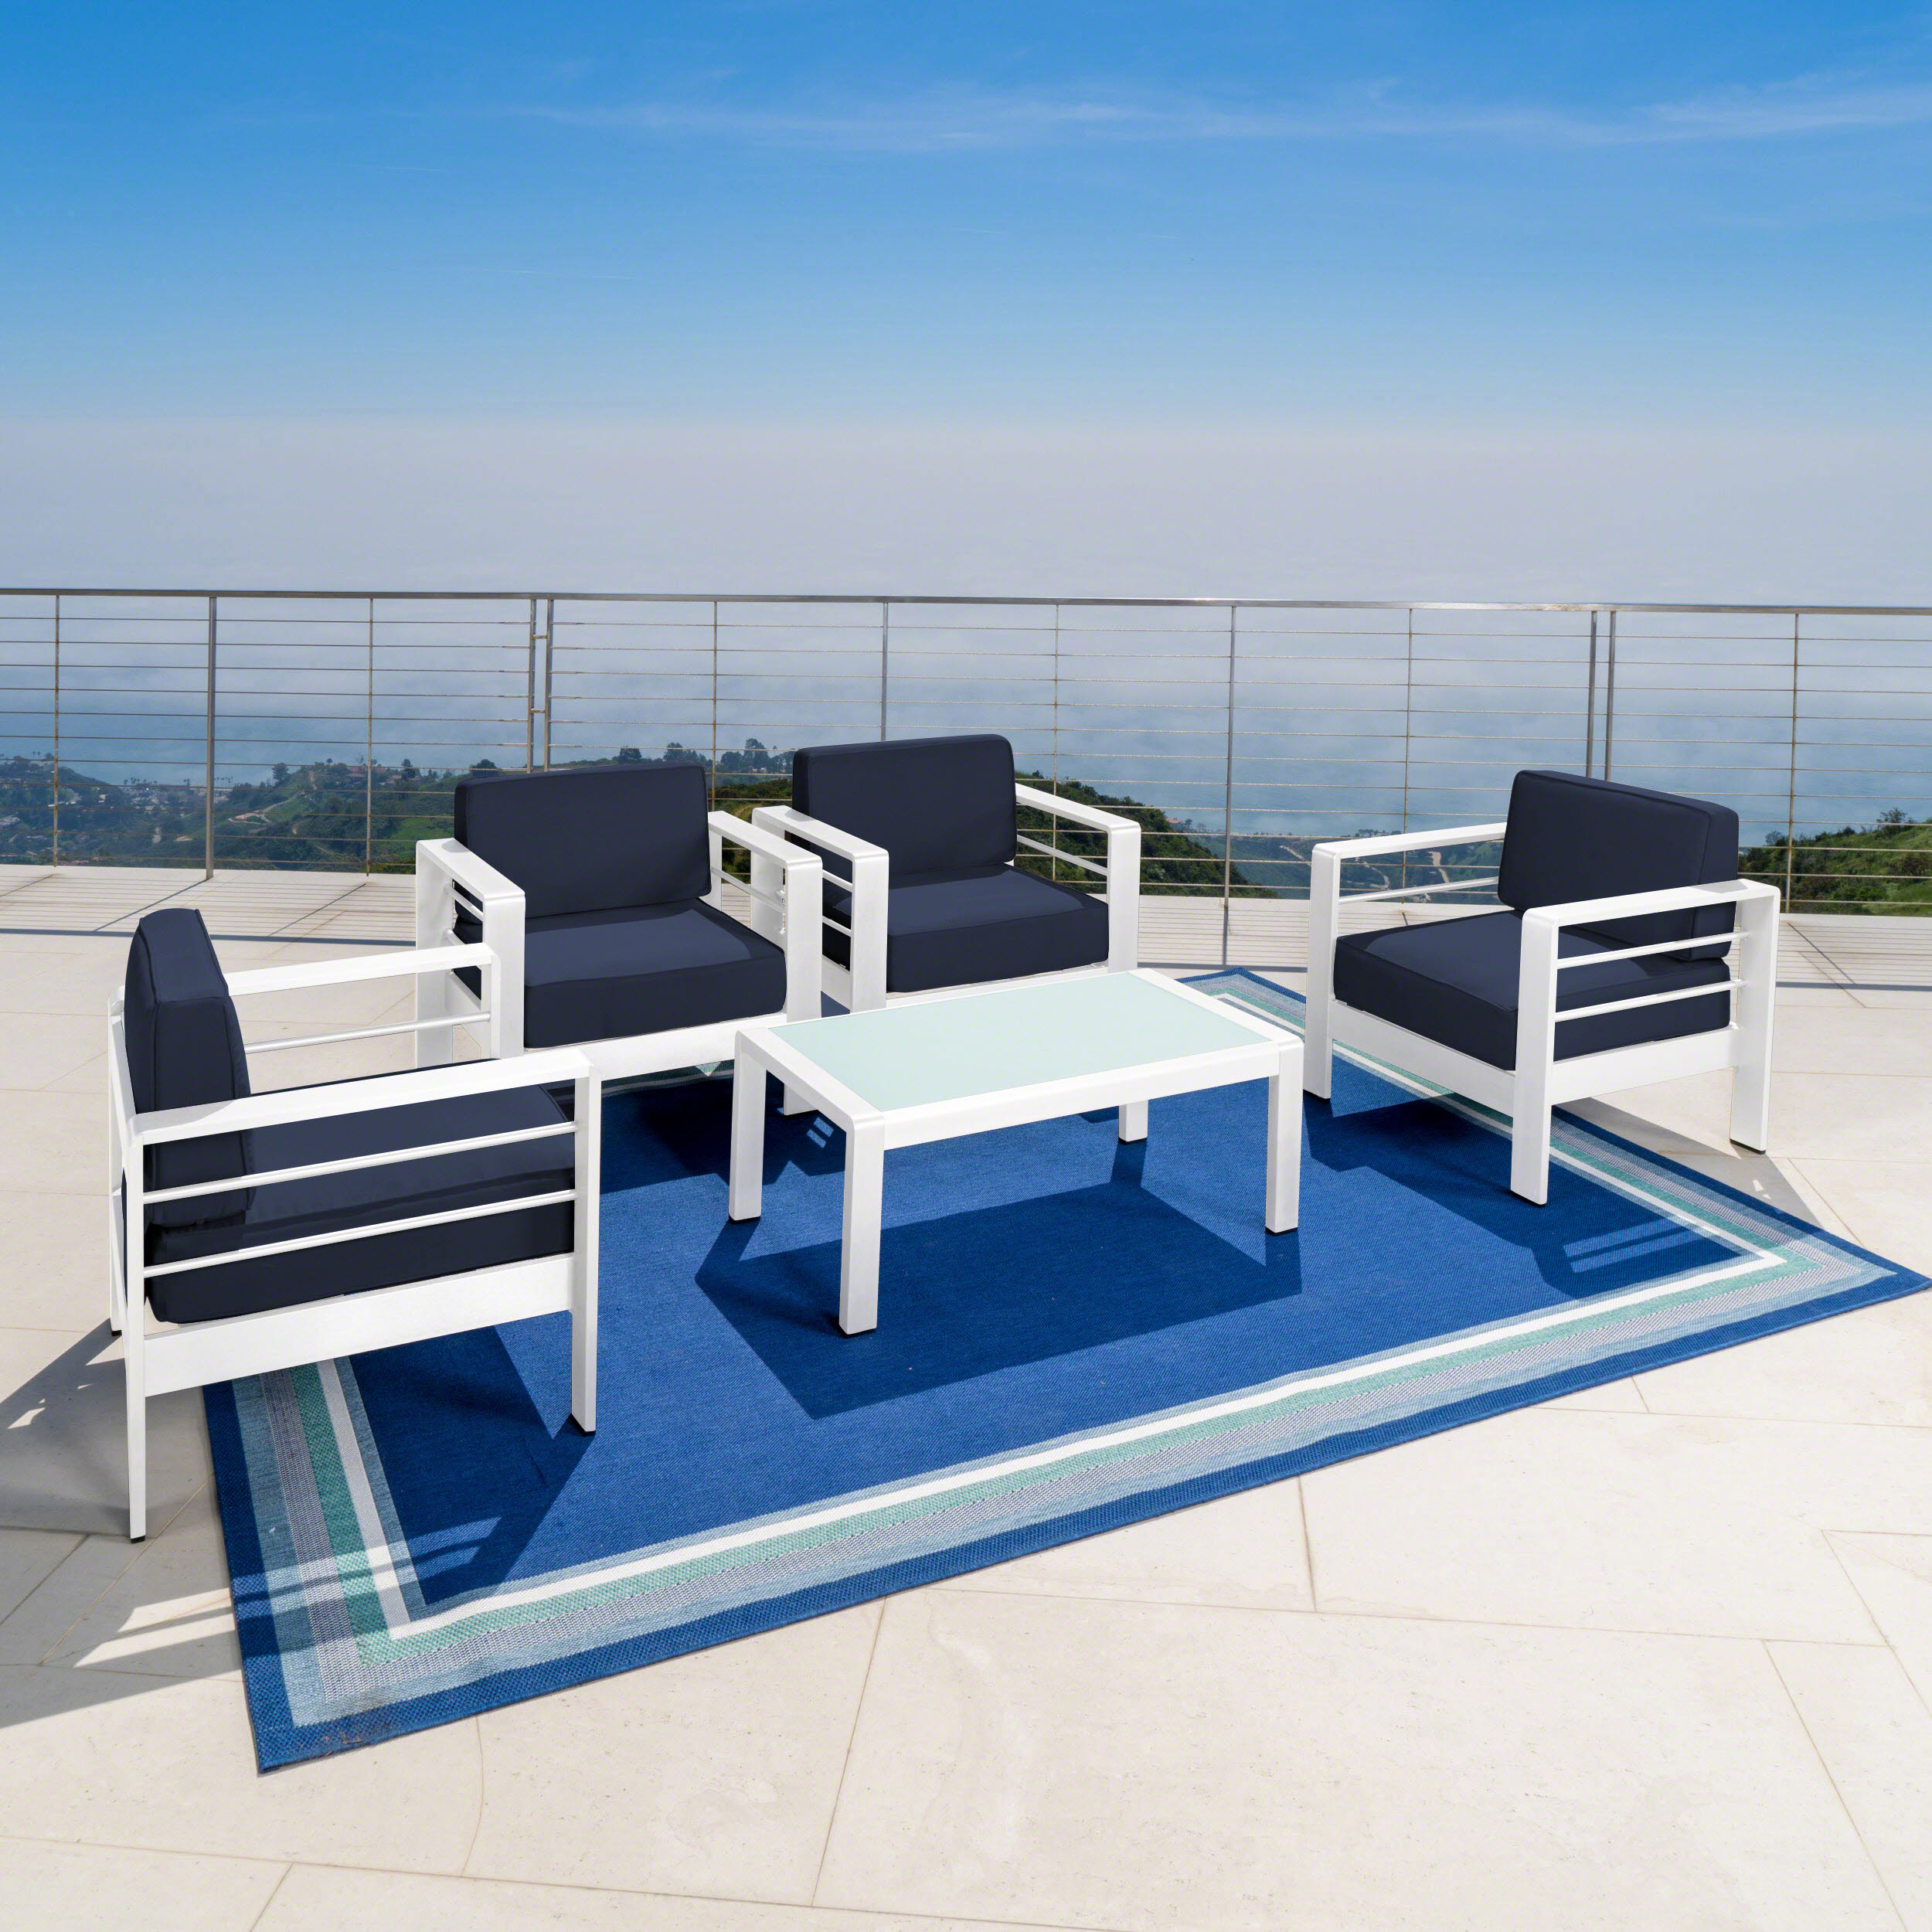 Crested Bay Outdoor 5 Piece Aluminum Chat Set with Water Resistant Cushions, White and Navy Blue